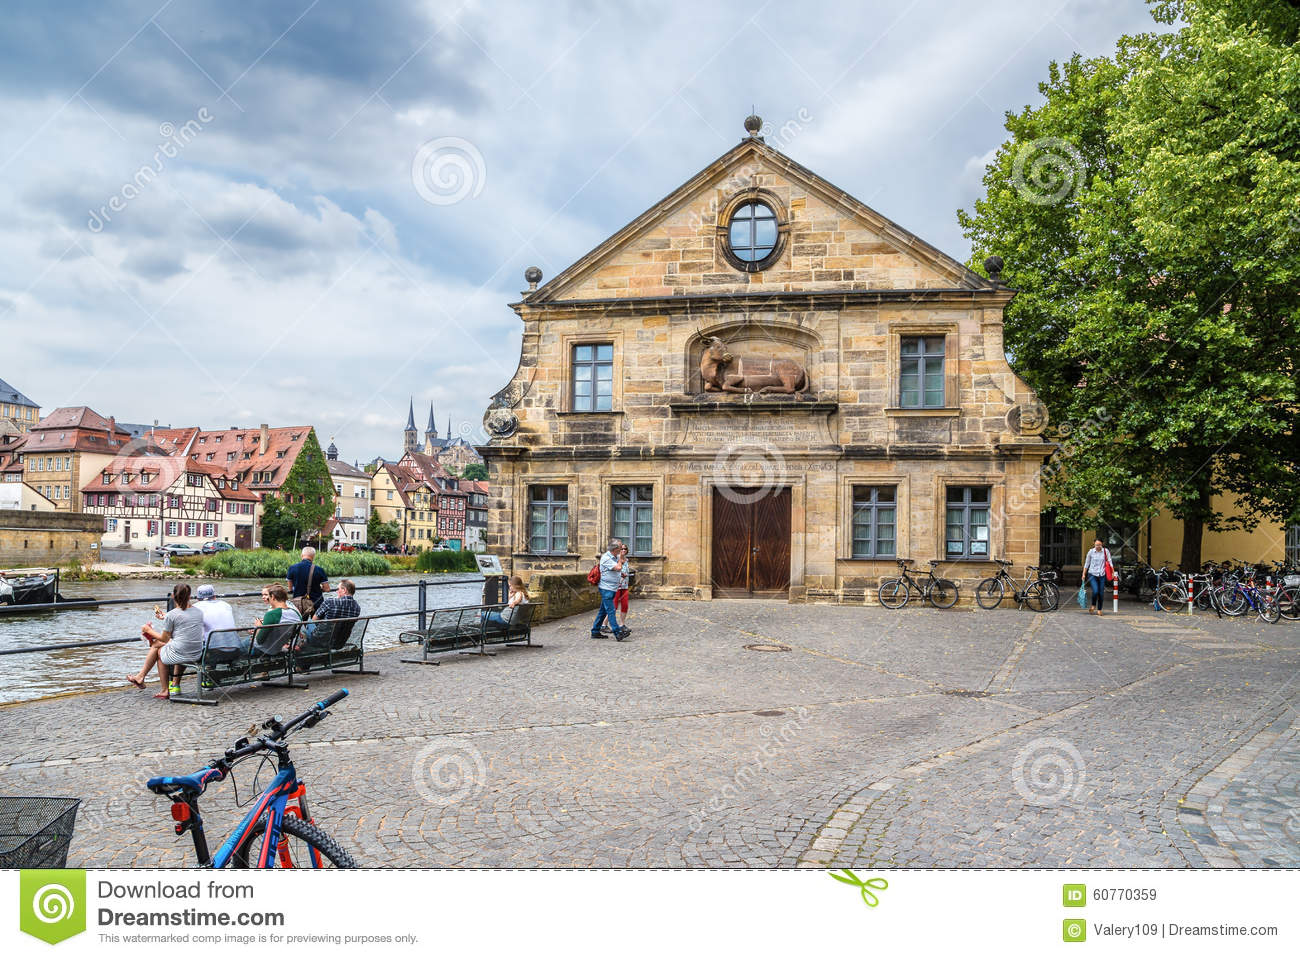 Bamberg, Germany. Facade of the Schlachte House - the old slaughterhouse (1741-42), located on the banks of the Regnitz